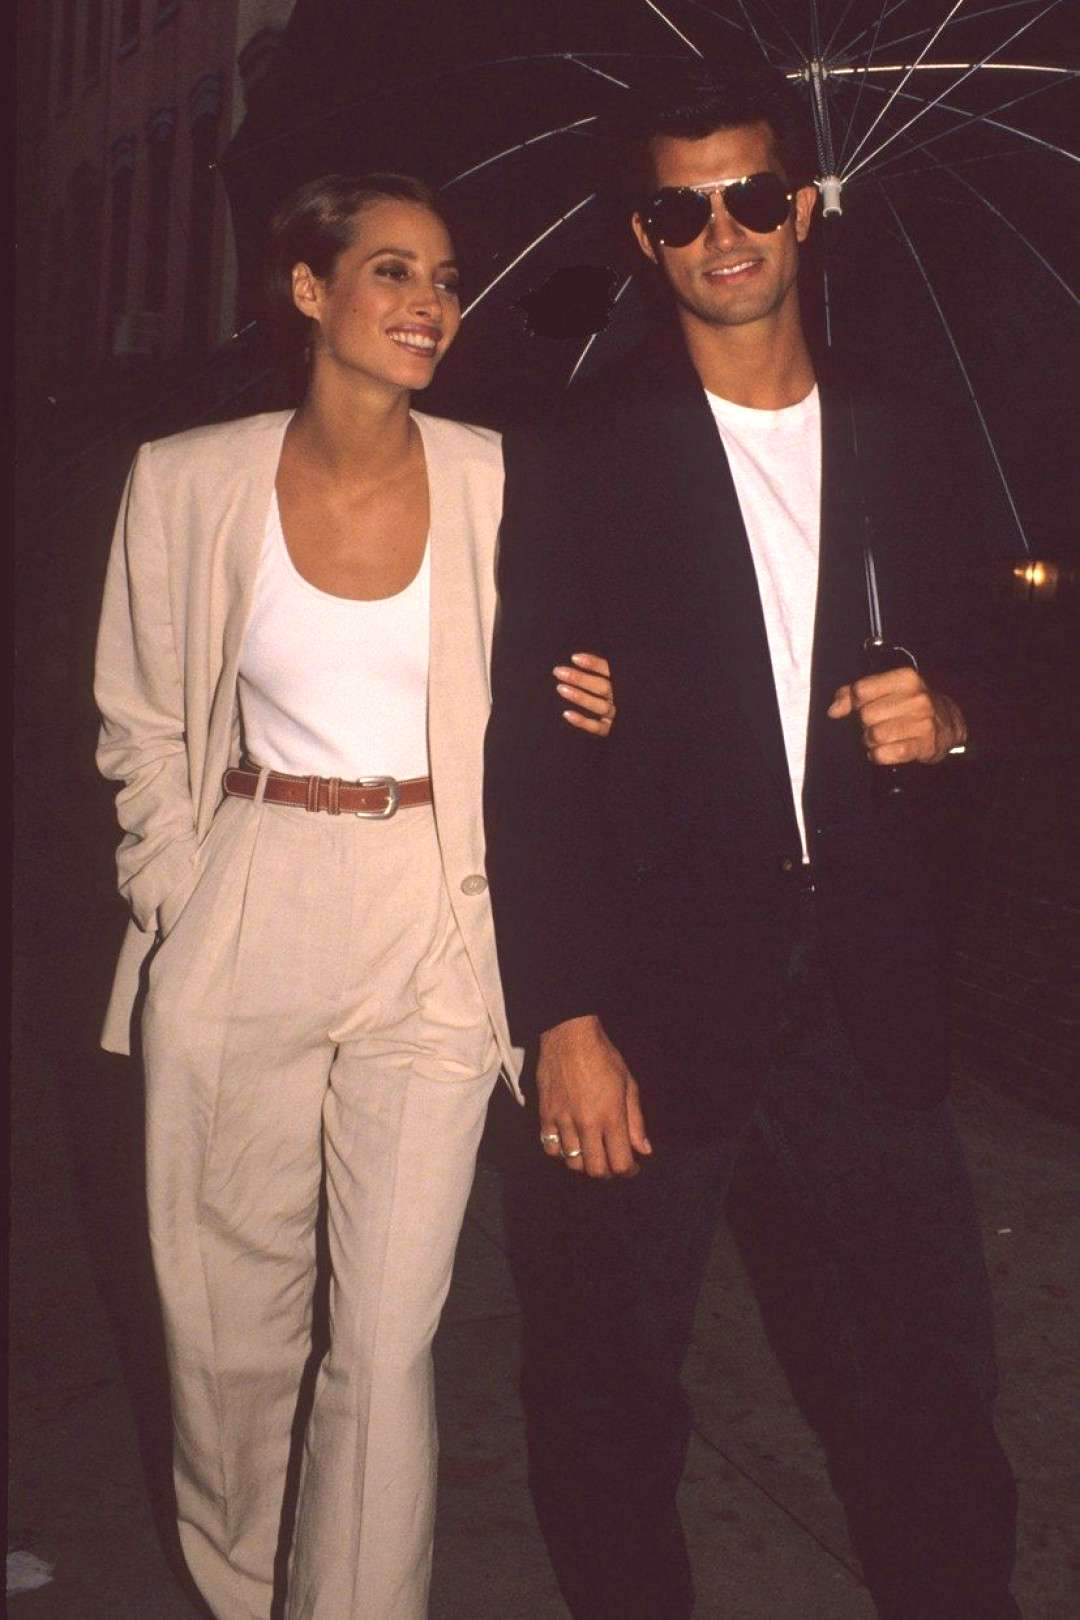 Le style 90s de Christy Turlington